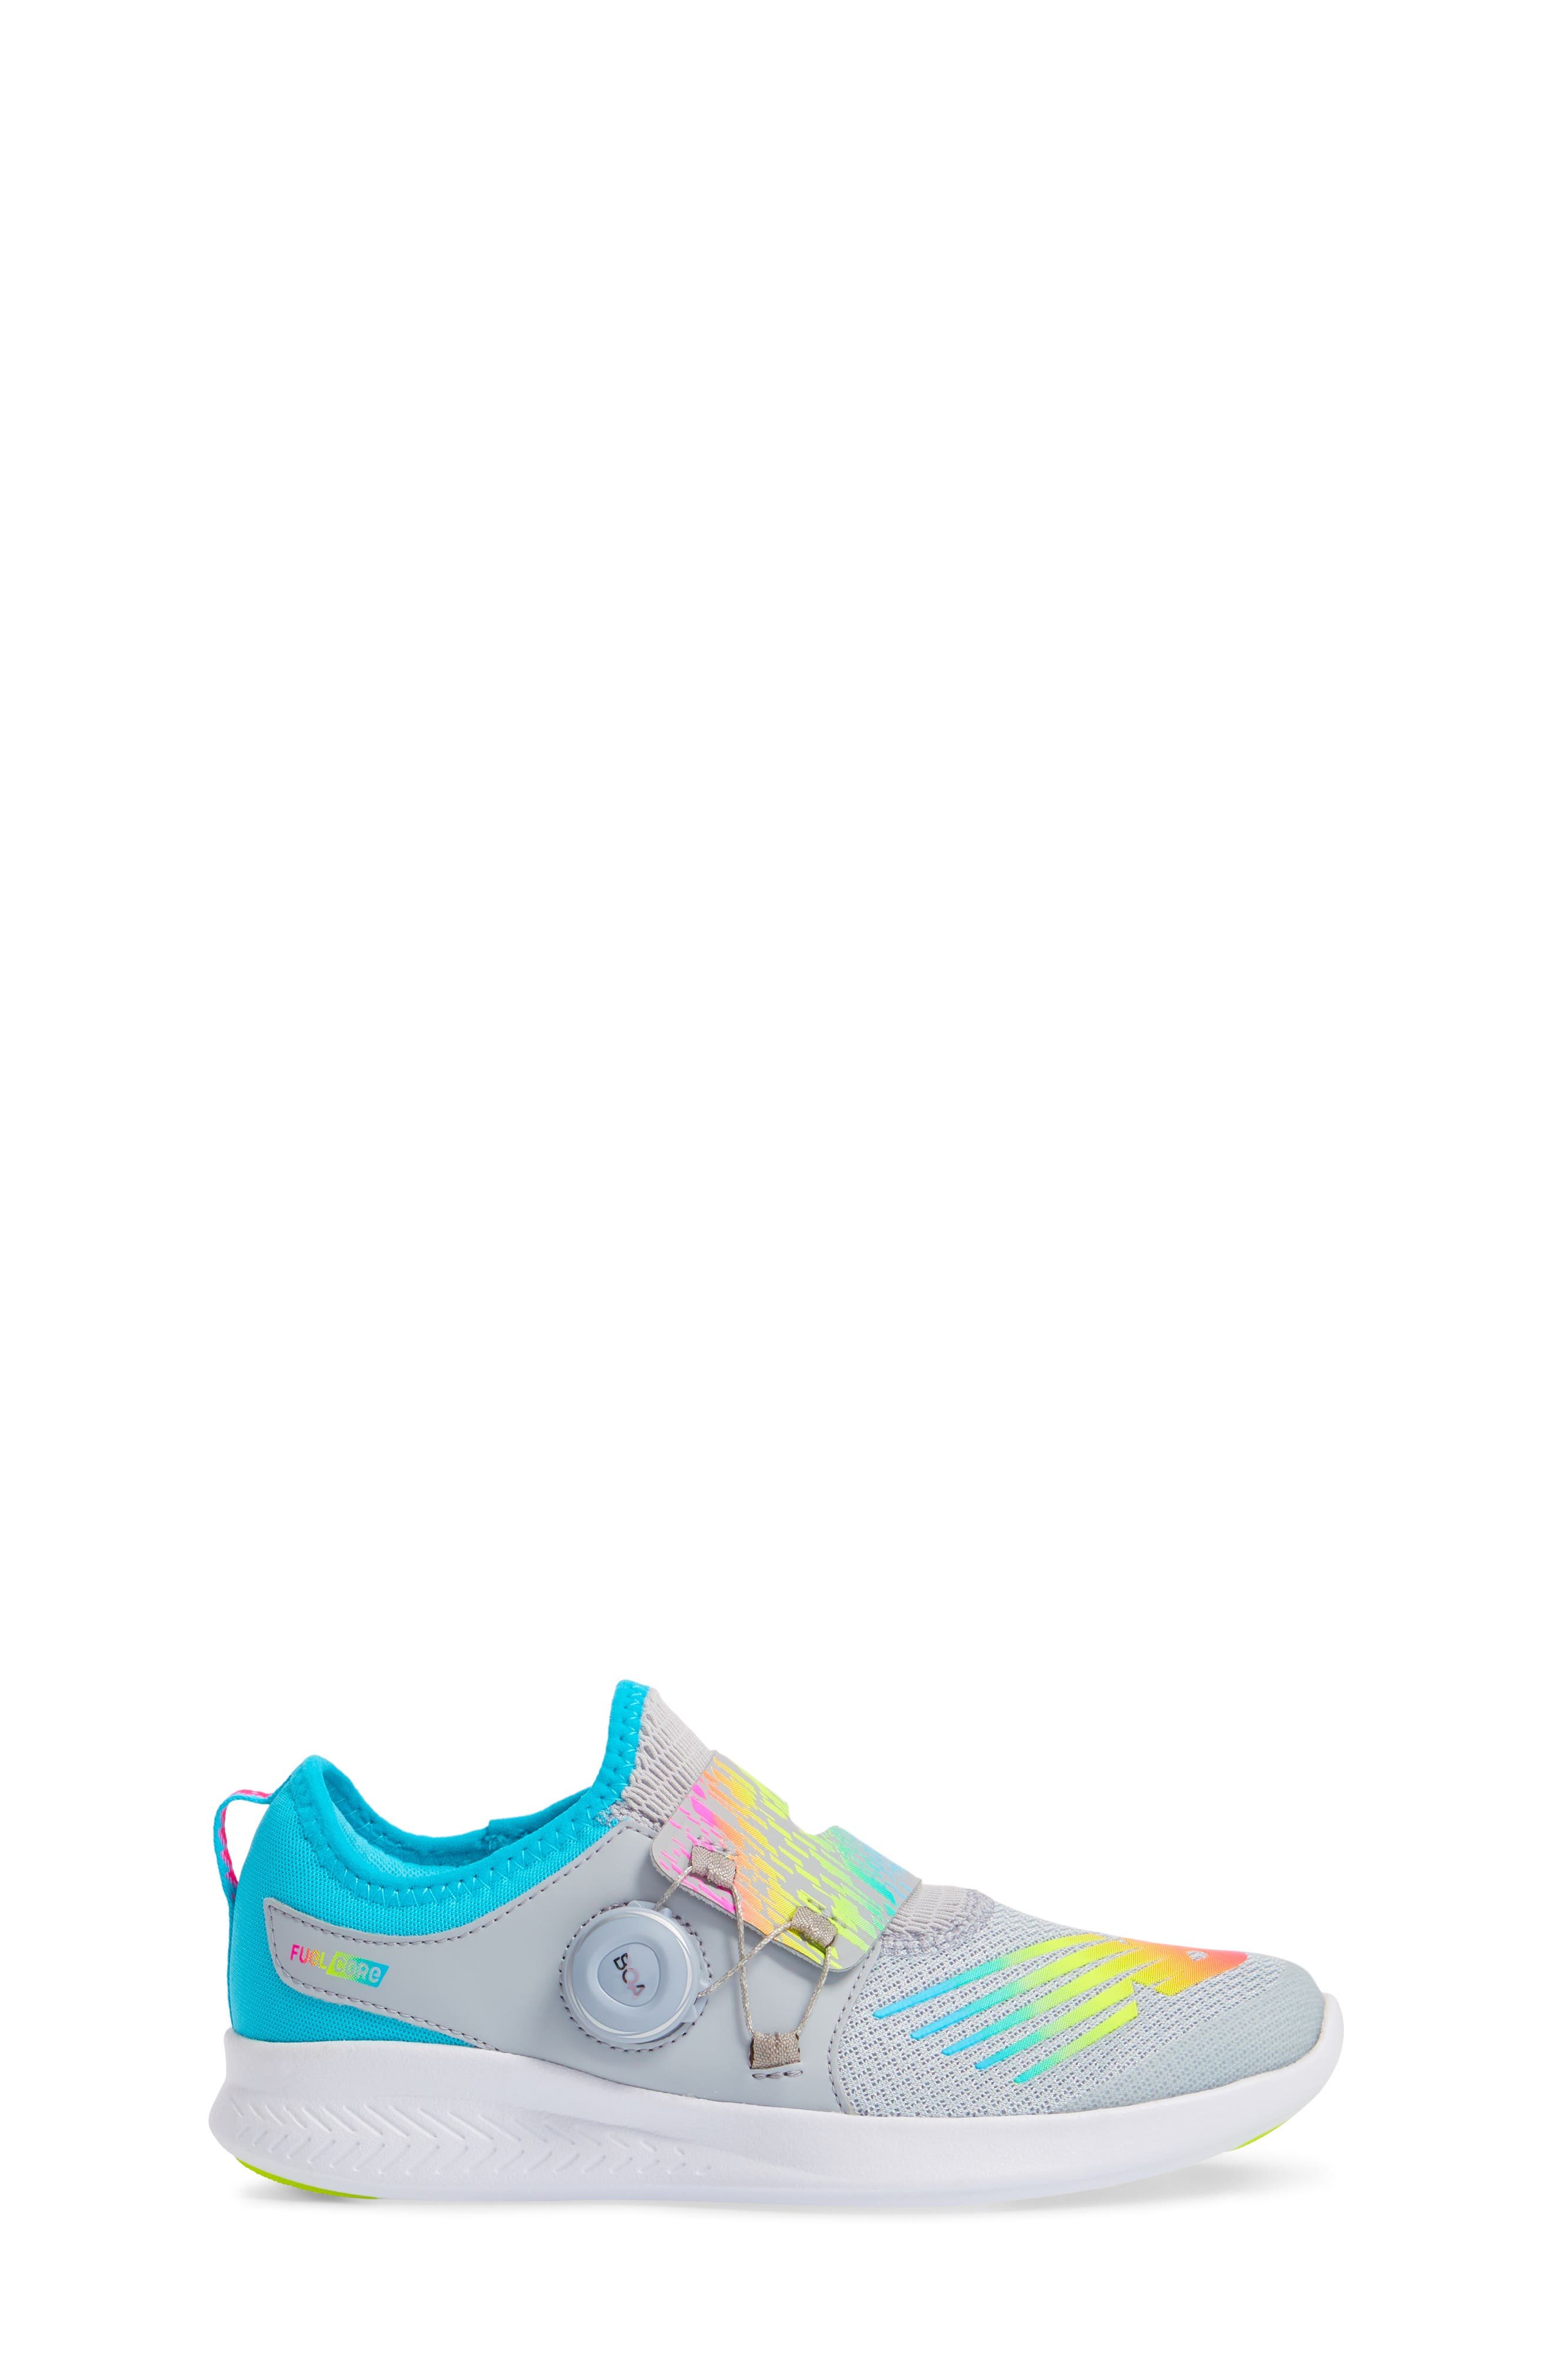 BKO Running Shoe,                             Alternate thumbnail 8, color,